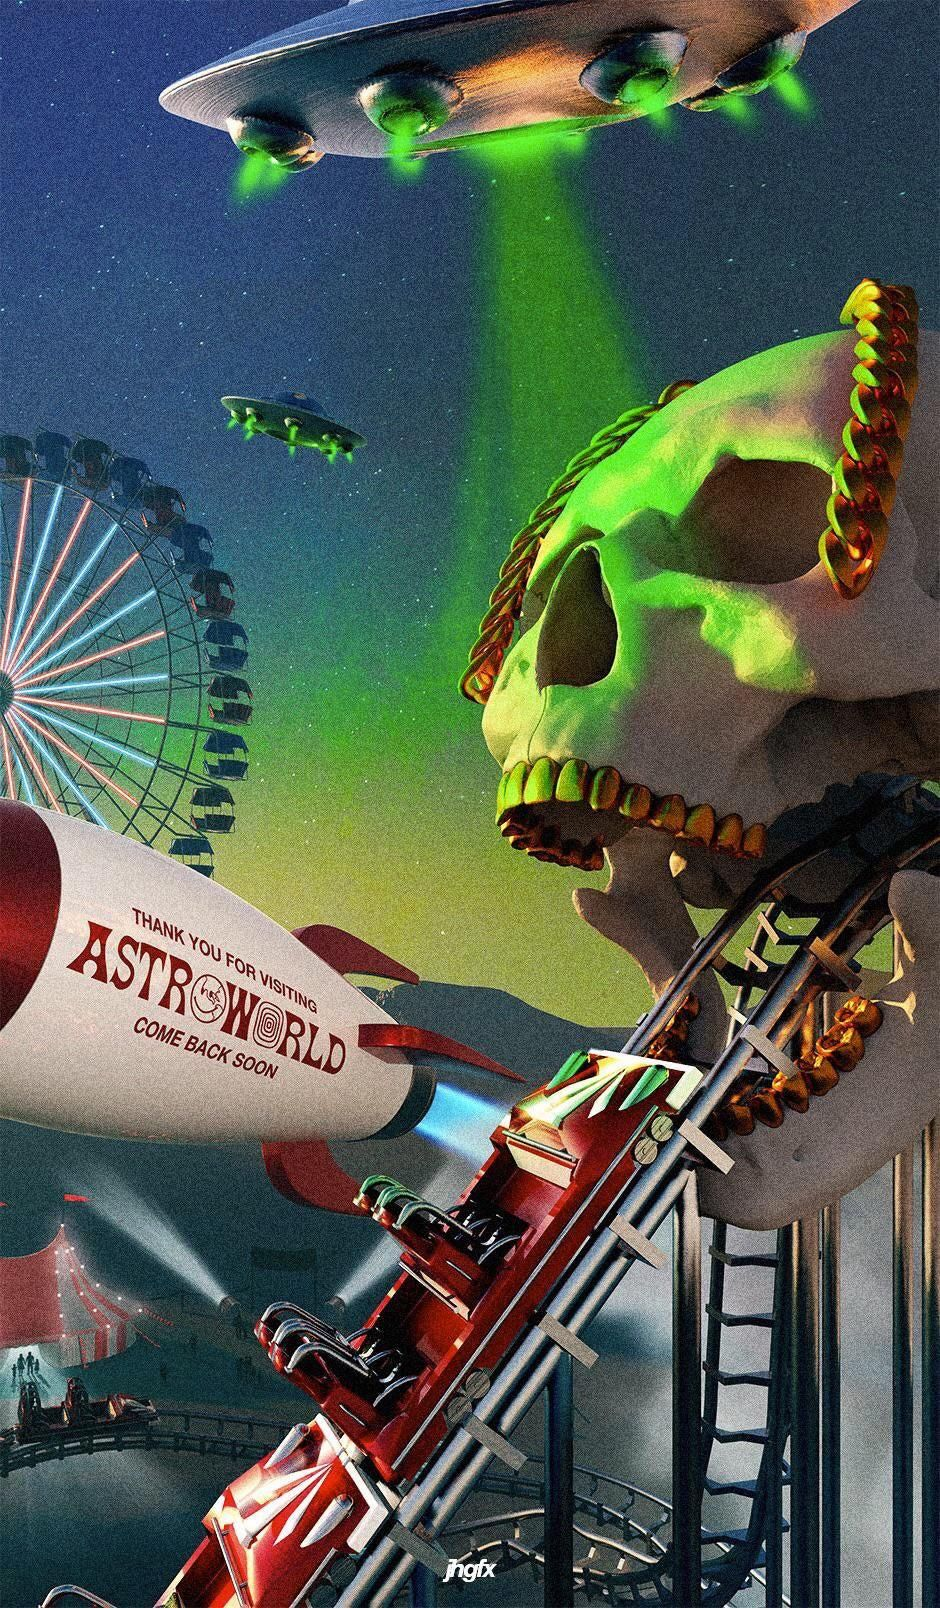 Astroworld Wallpaper Kolpaper Awesome Free Hd Wallpapers